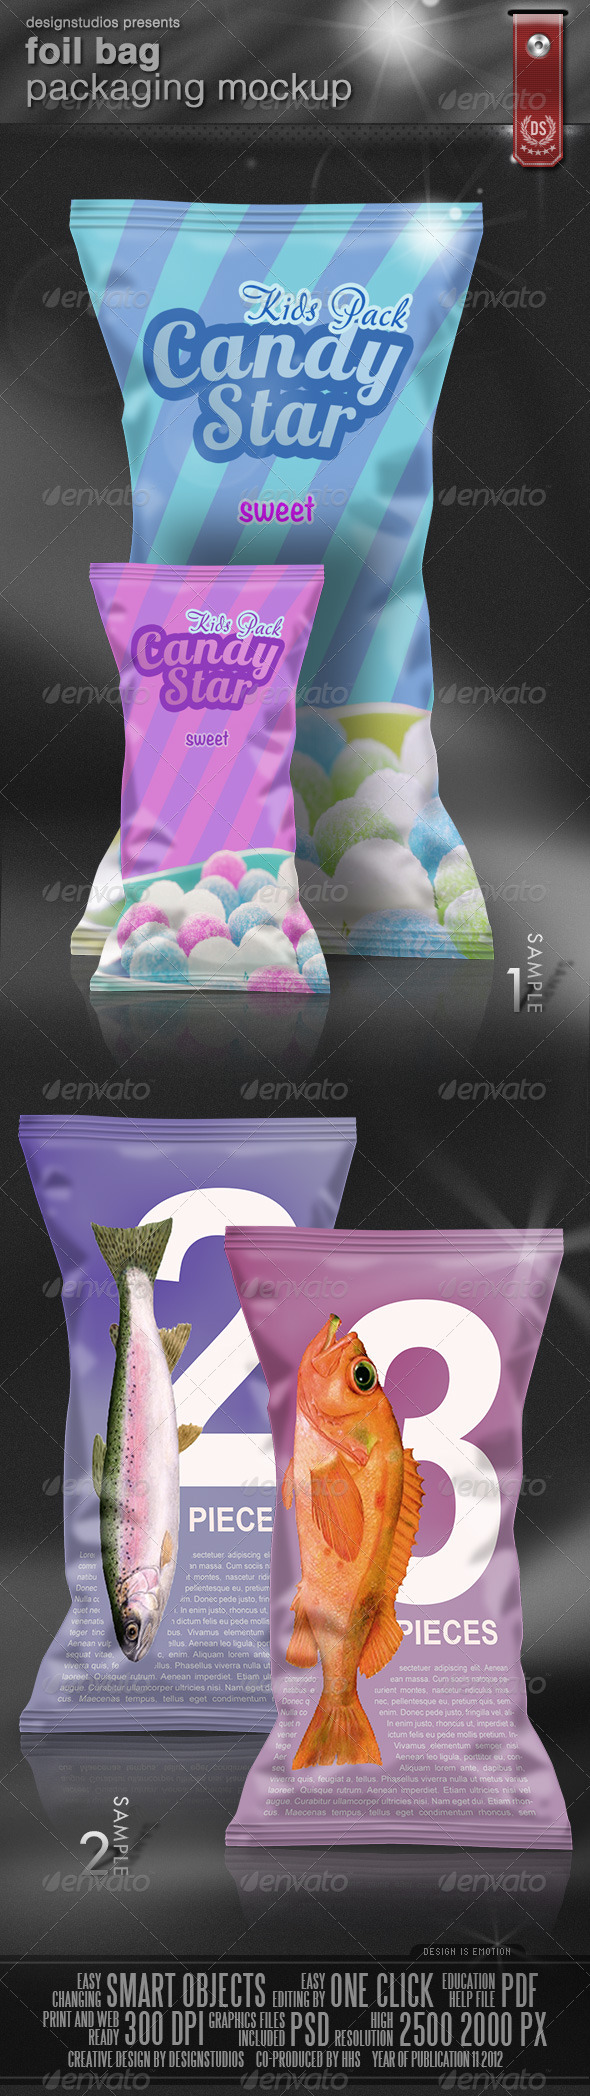 GraphicRiver Foil Bag Packaging Mock-Up 3471397